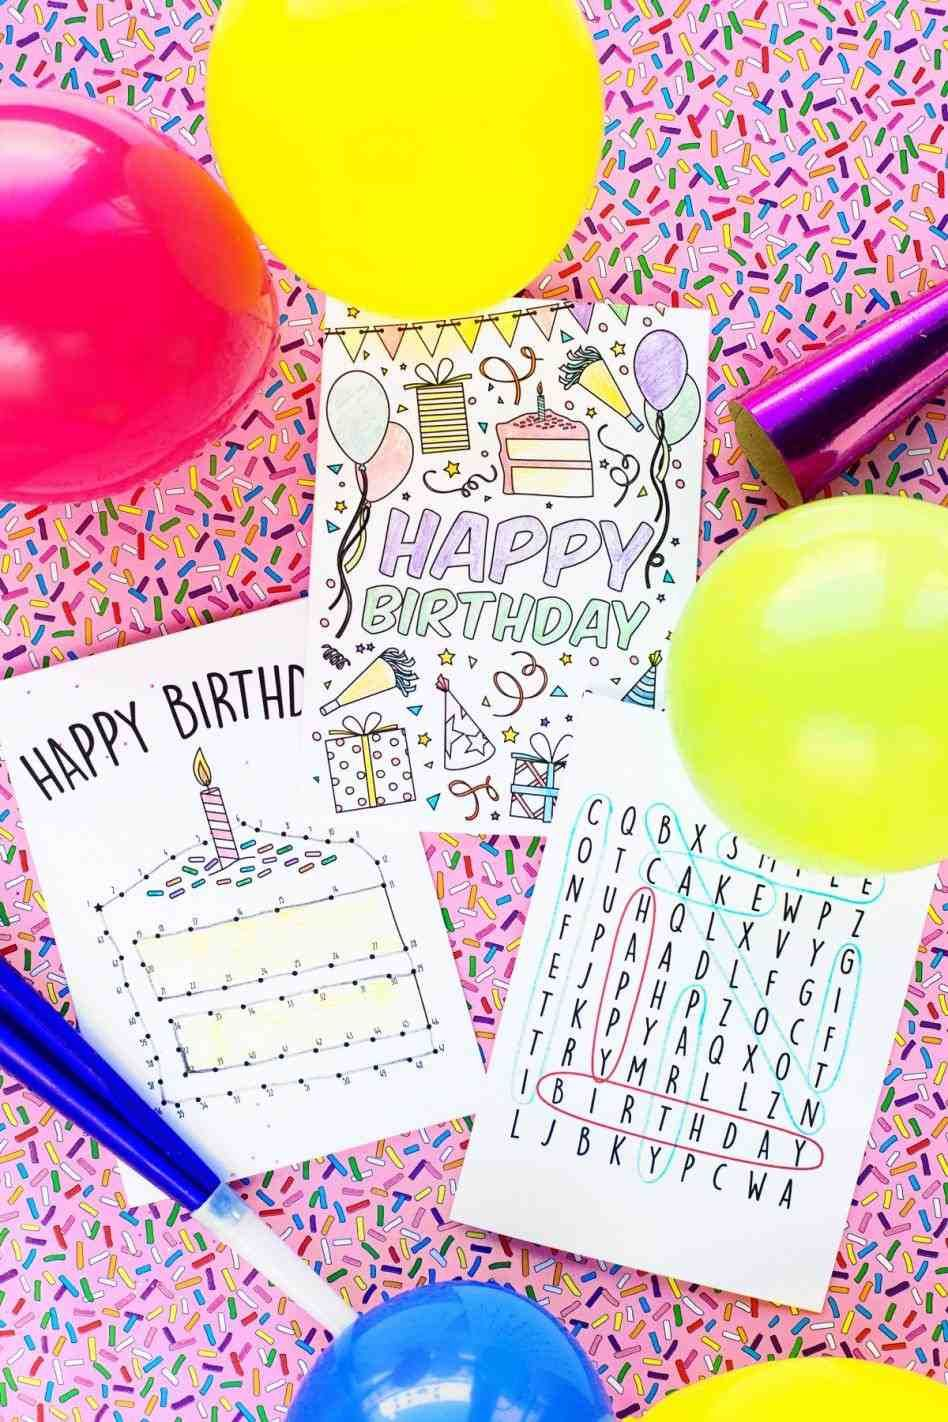 Nice And Appealing Birthday Cards To Send Your Friends Happy Card Delightful Greeting Online By Mail Gift W Formal